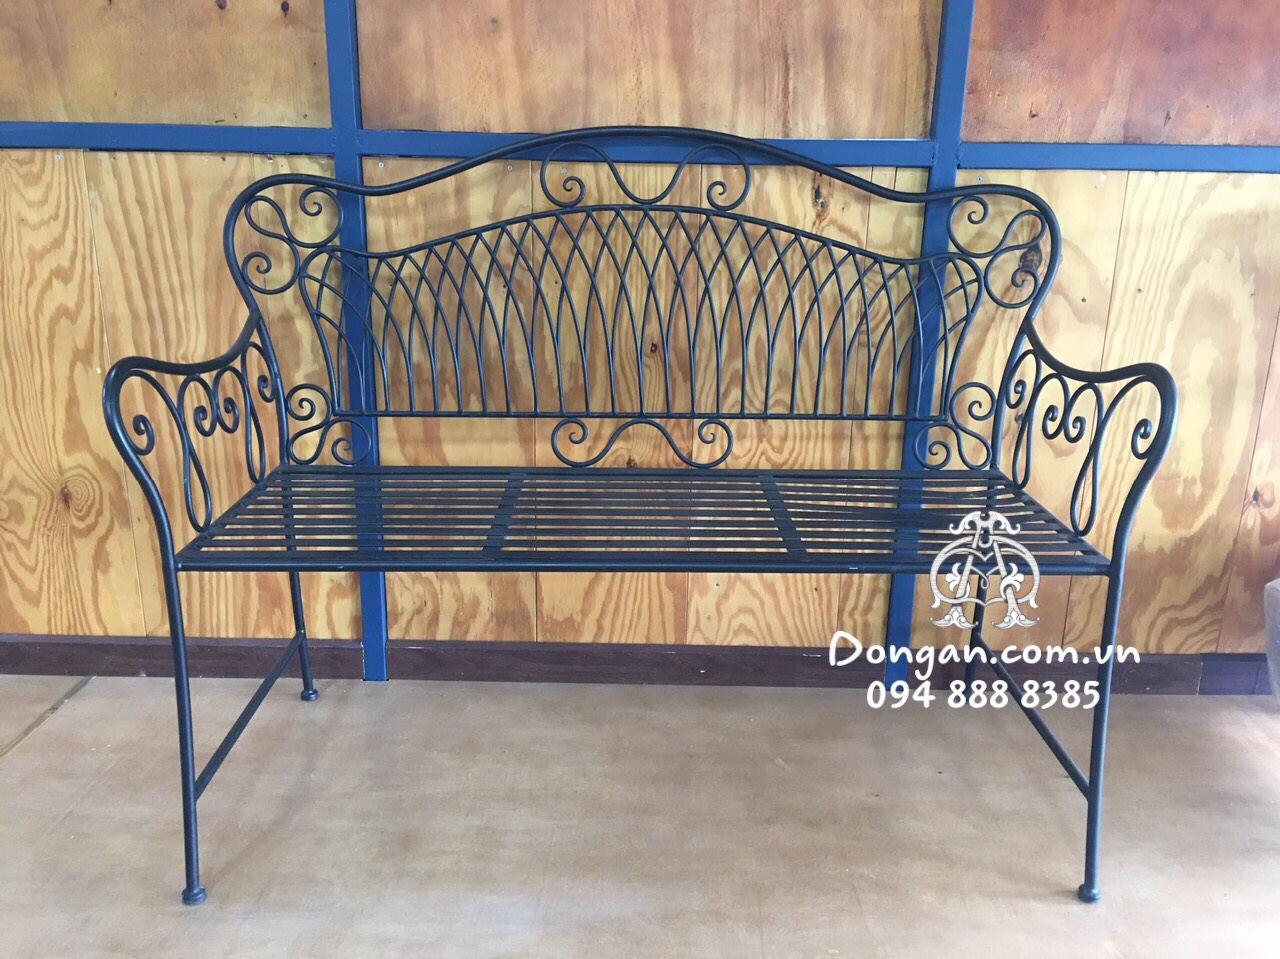 2 Seater Outdoor Iron Bench